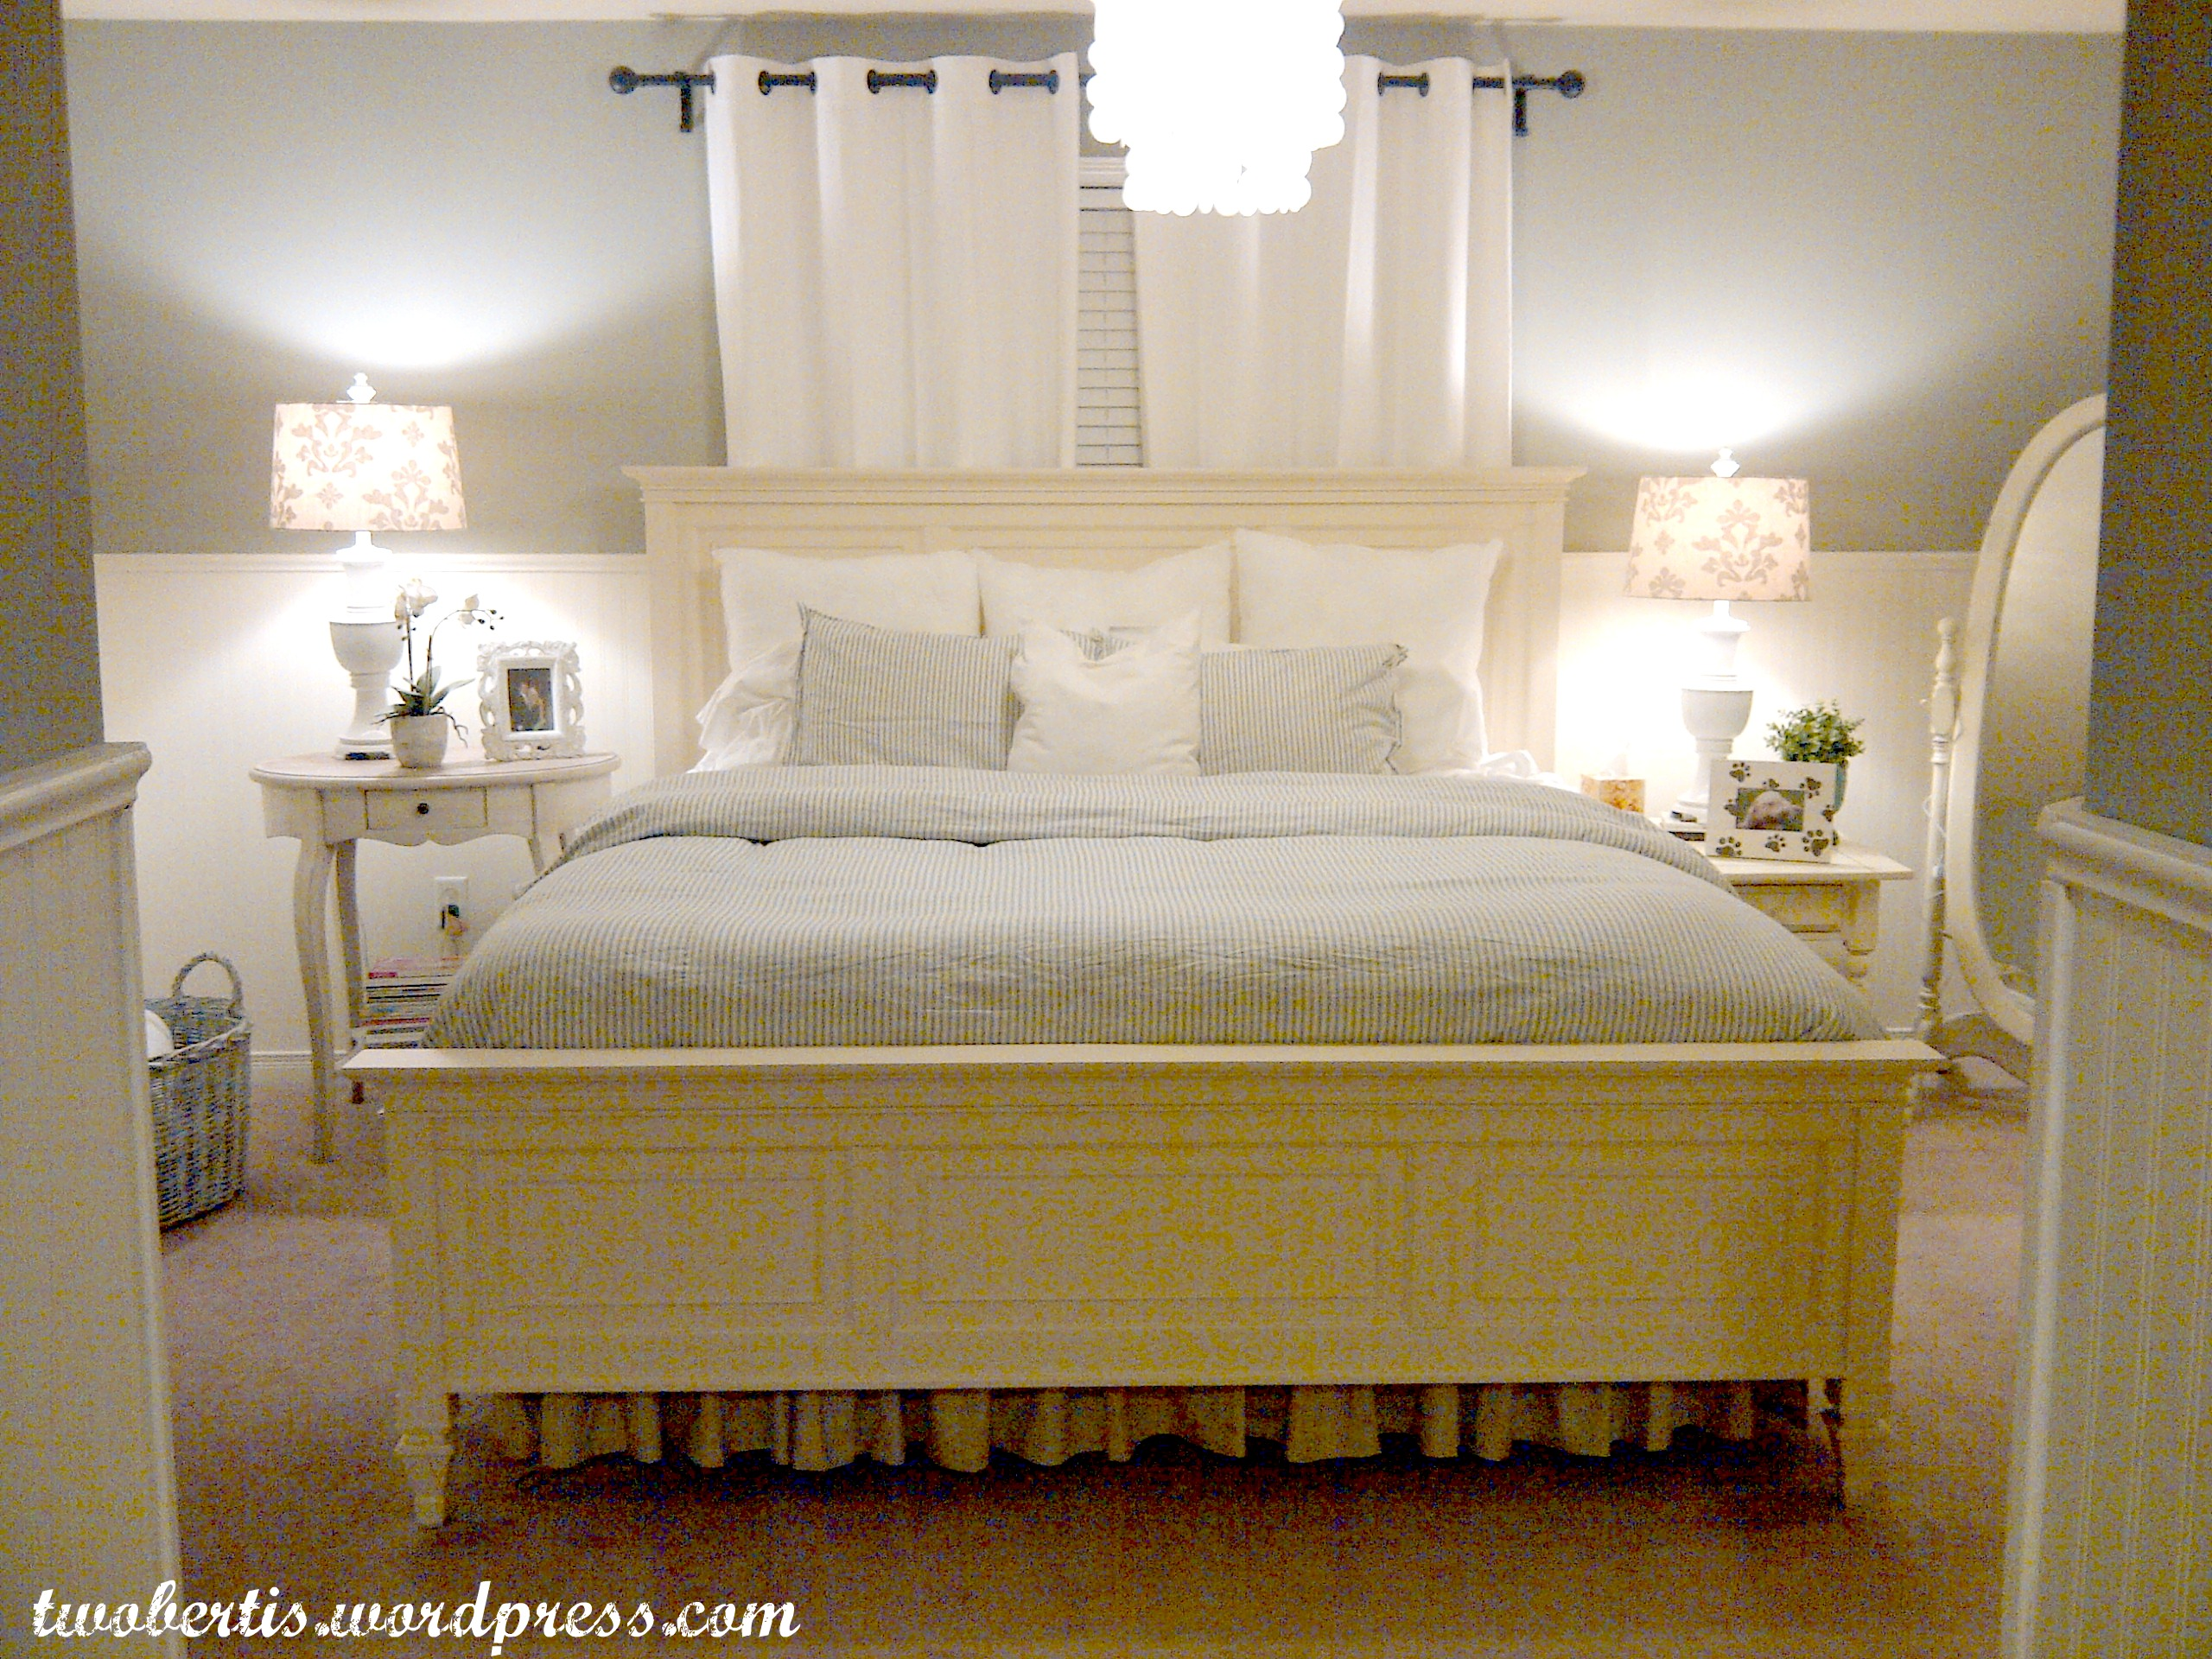 before - Pottery Barn Bedroom Decorating Ideas